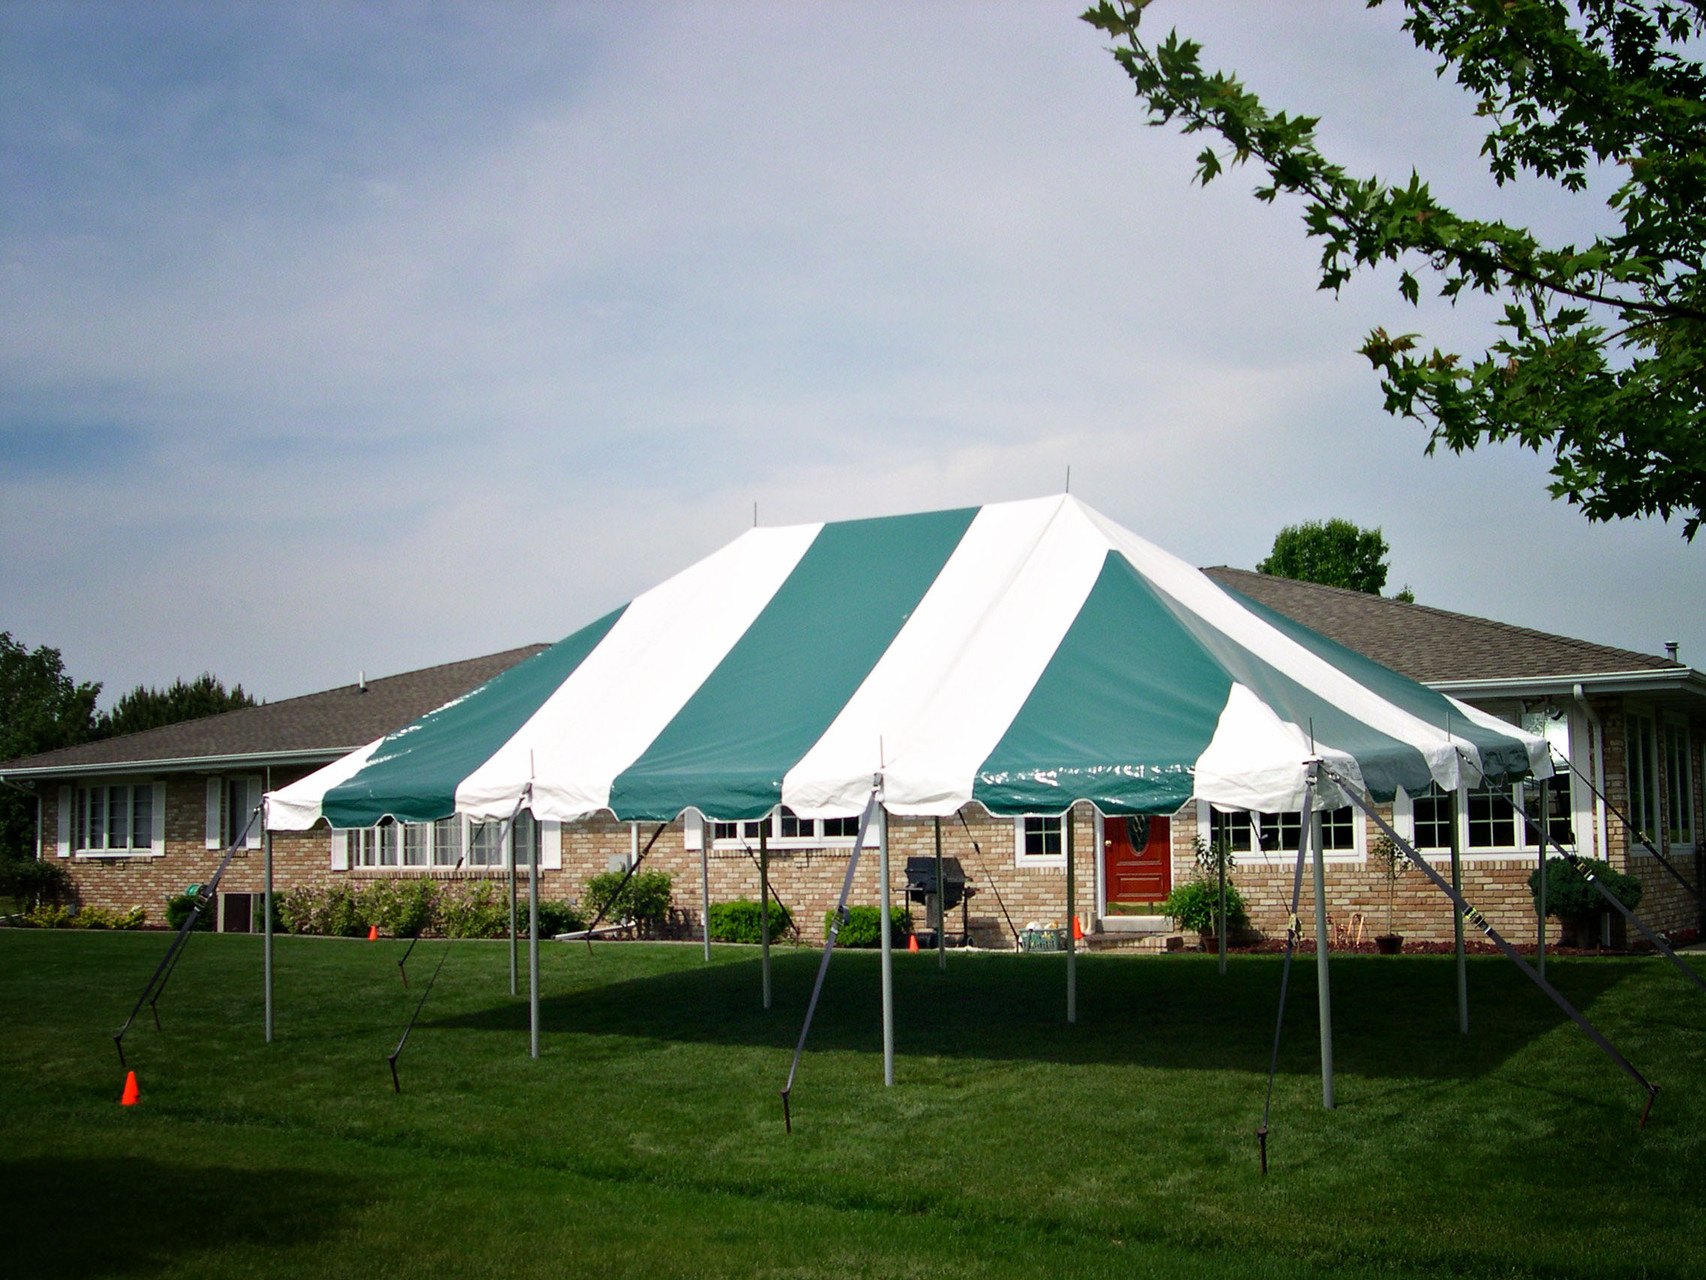 20 x 30 Green and white pole tent